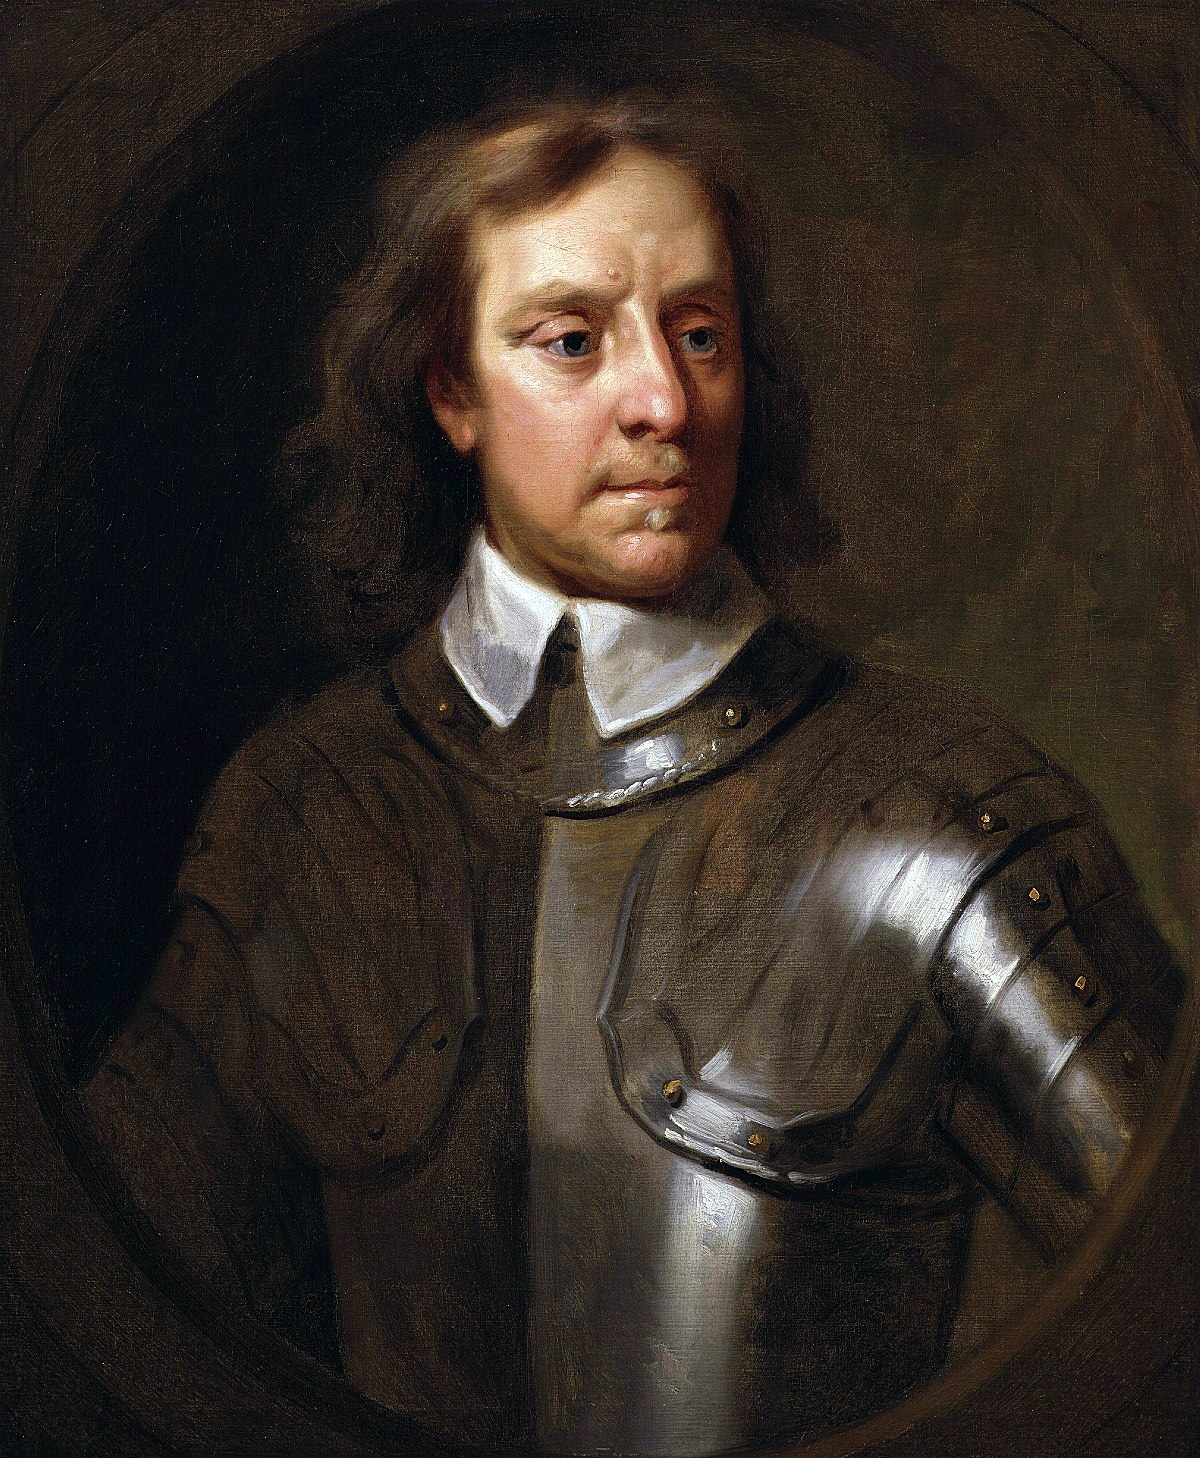 1200px-Oliver_Cromwell_by_Samuel_Cooper